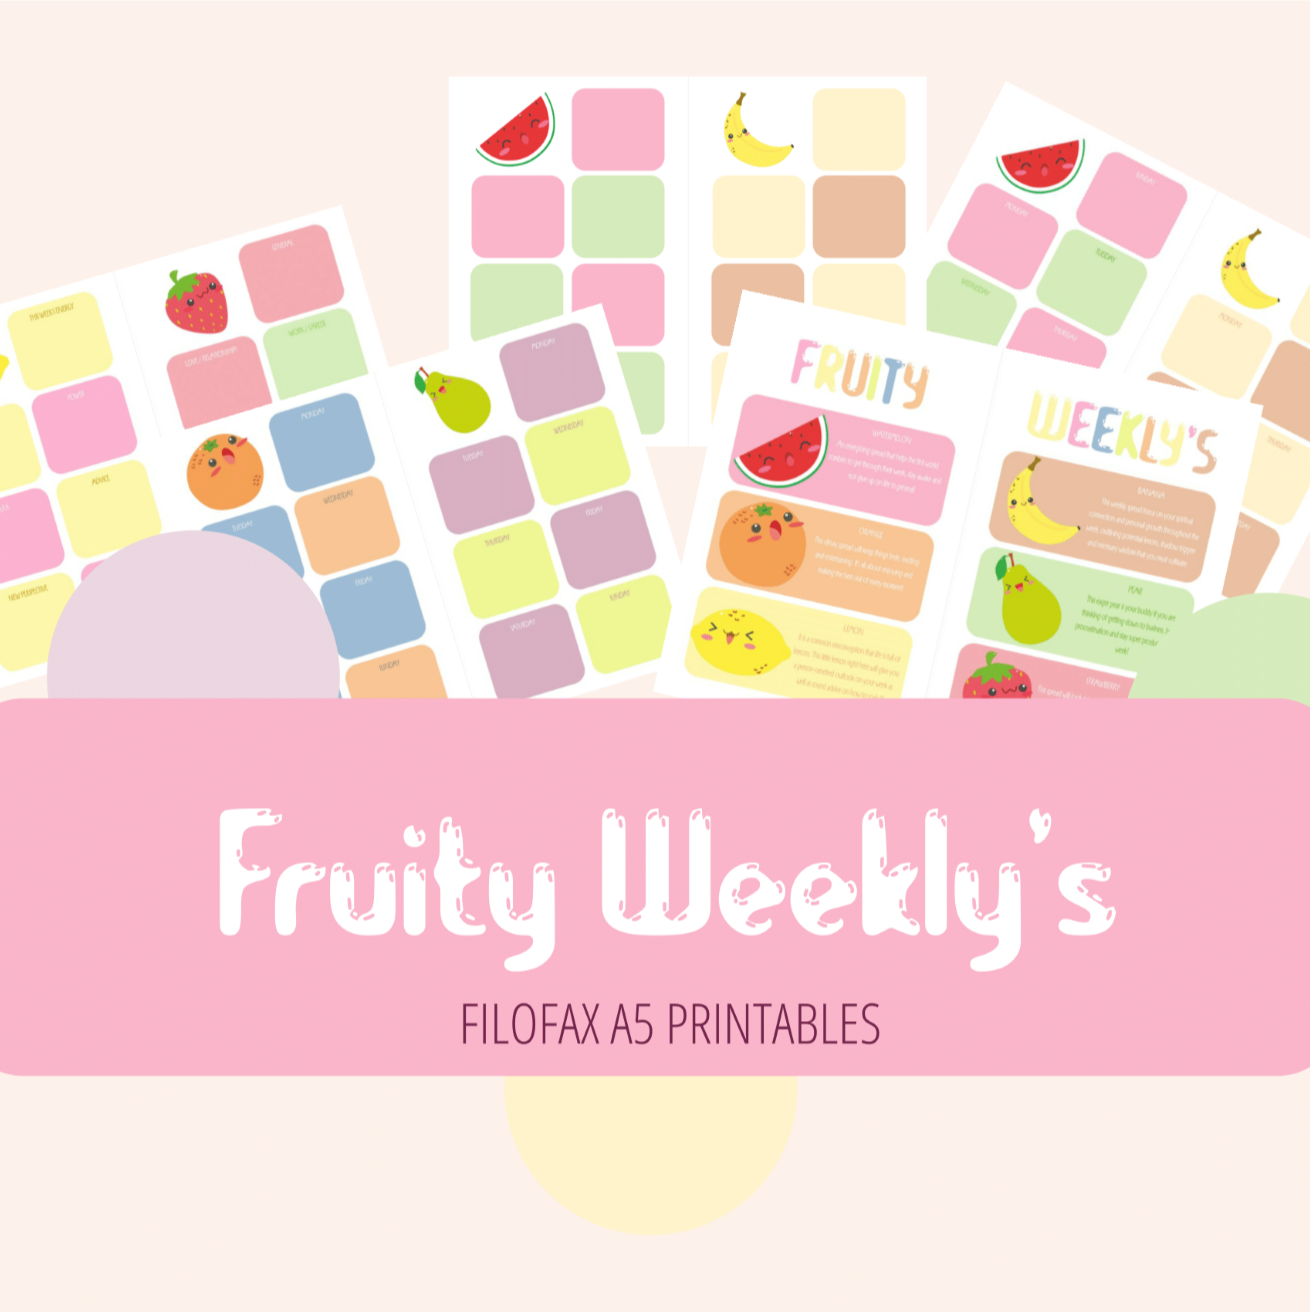 fruity weekls square photo.png